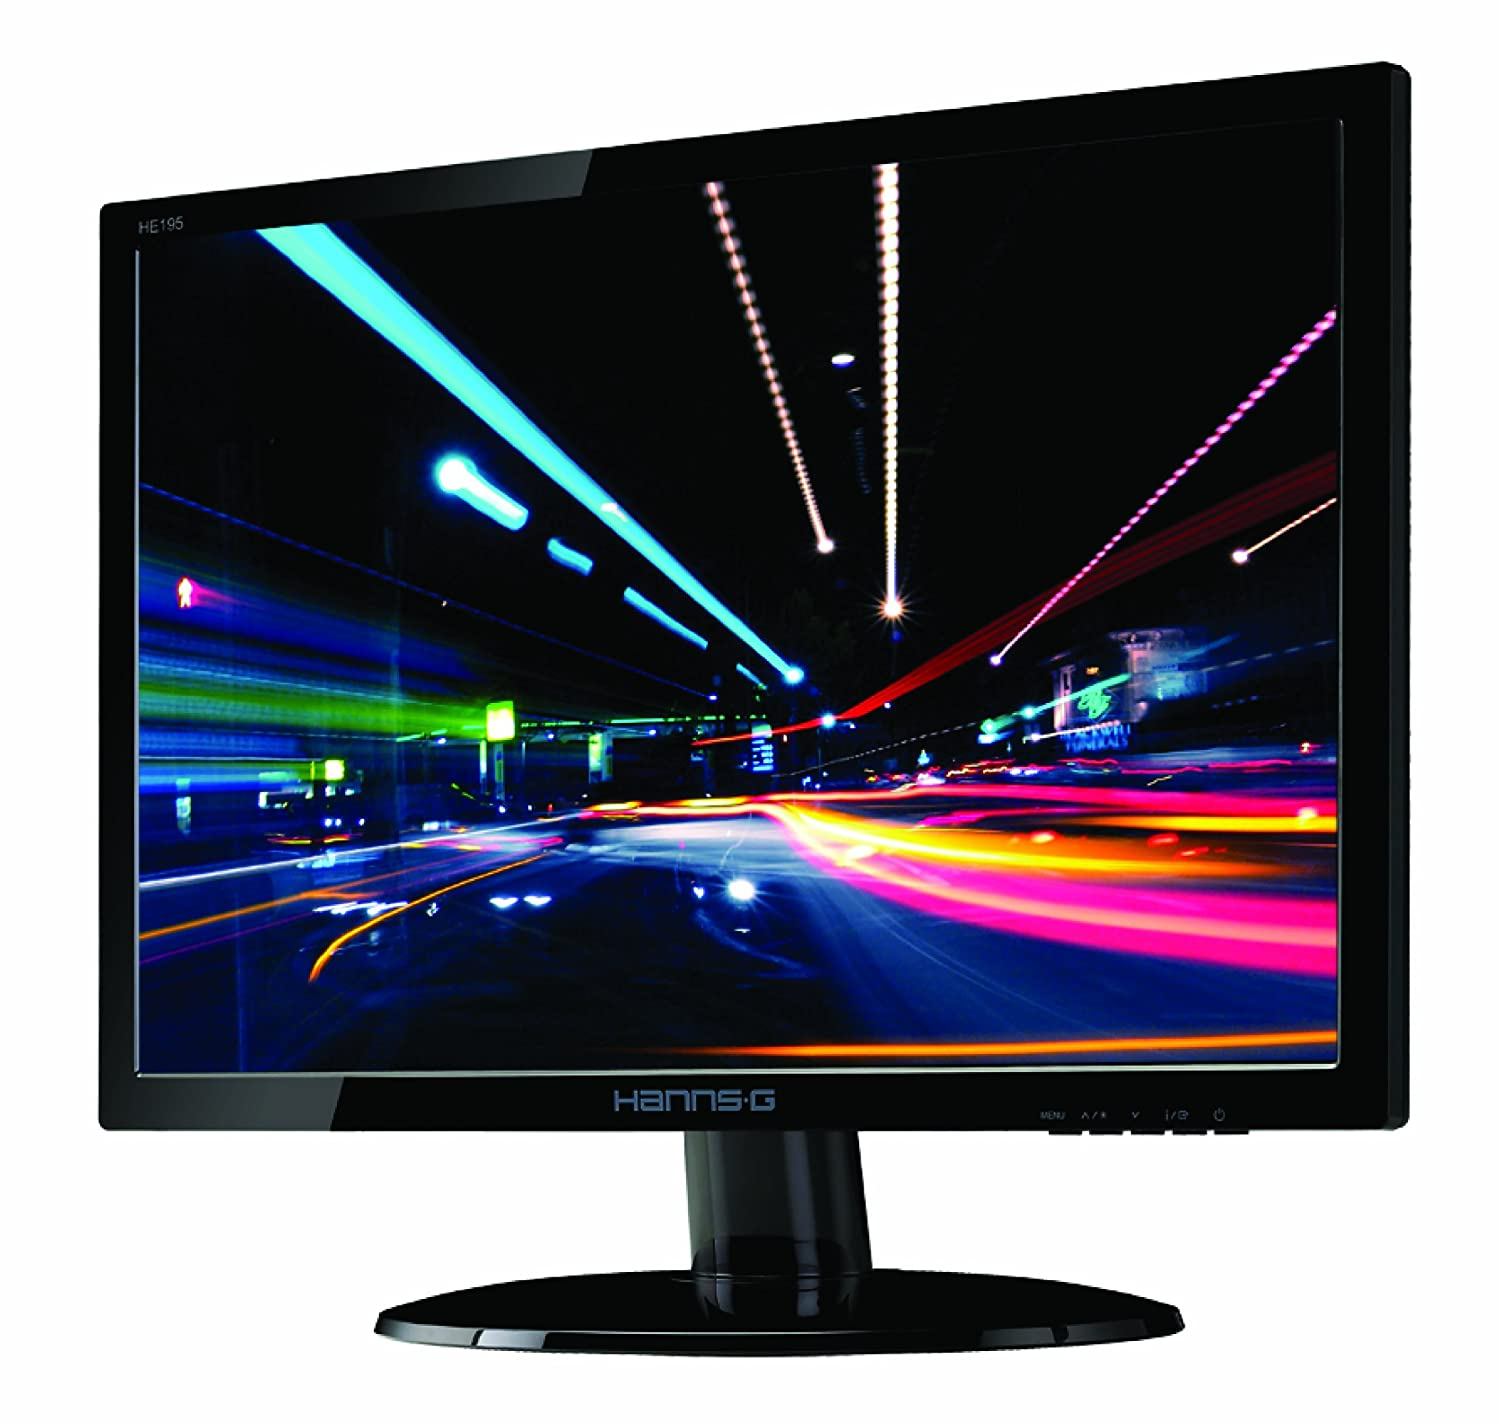 Hannspree HANNS.G HE195ABB 18.5 Inch Widescreen LED Monitor